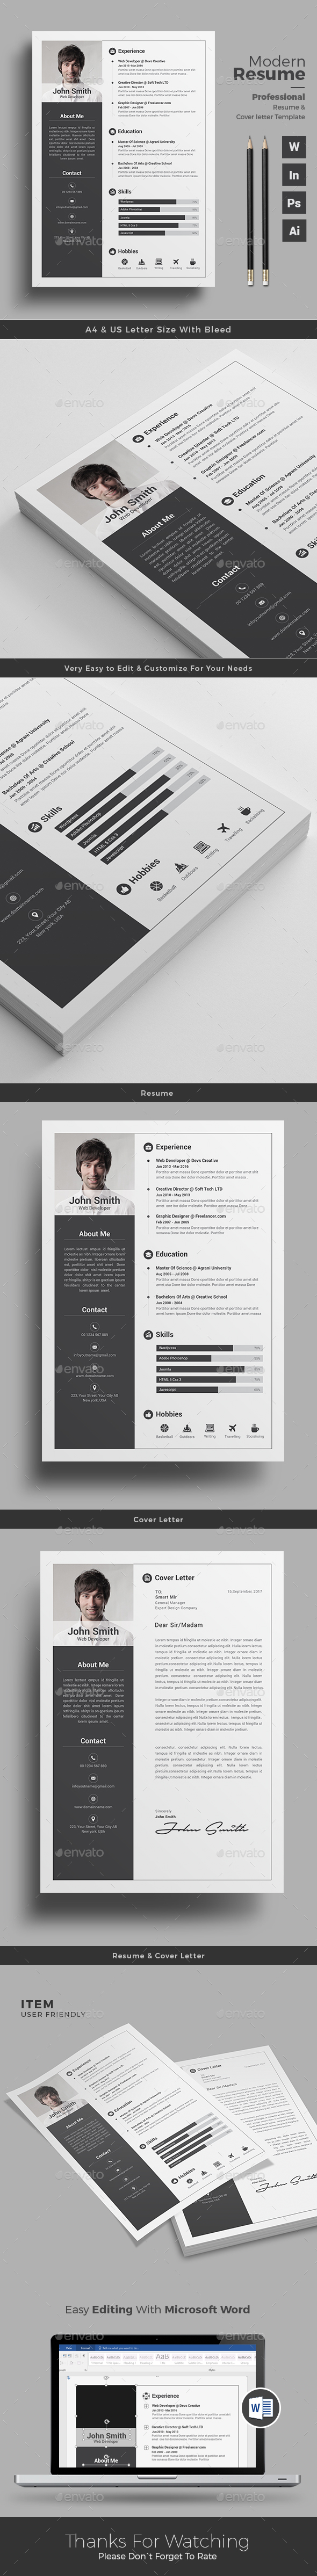 infographic resume by themedevisers